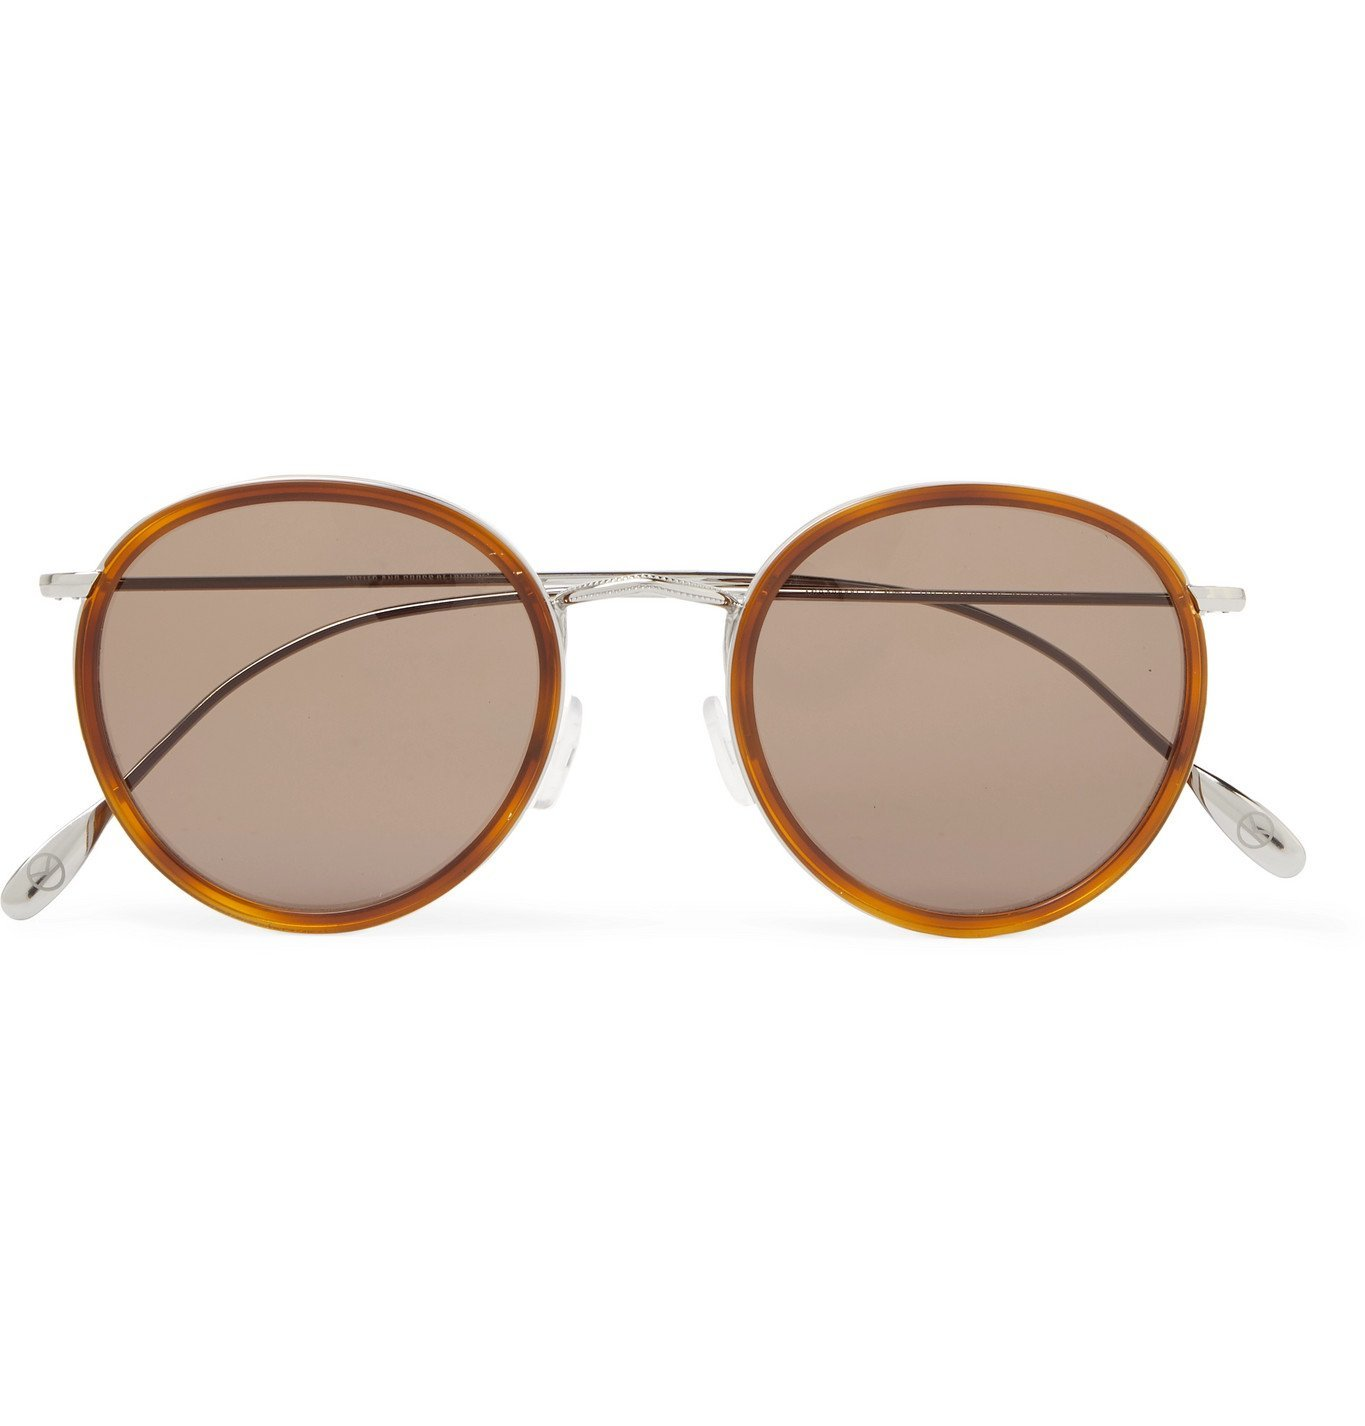 Photo: Kingsman - Cutler and Gross Round-Frame Acetate and Silver-Tone Sunglasses - Brown